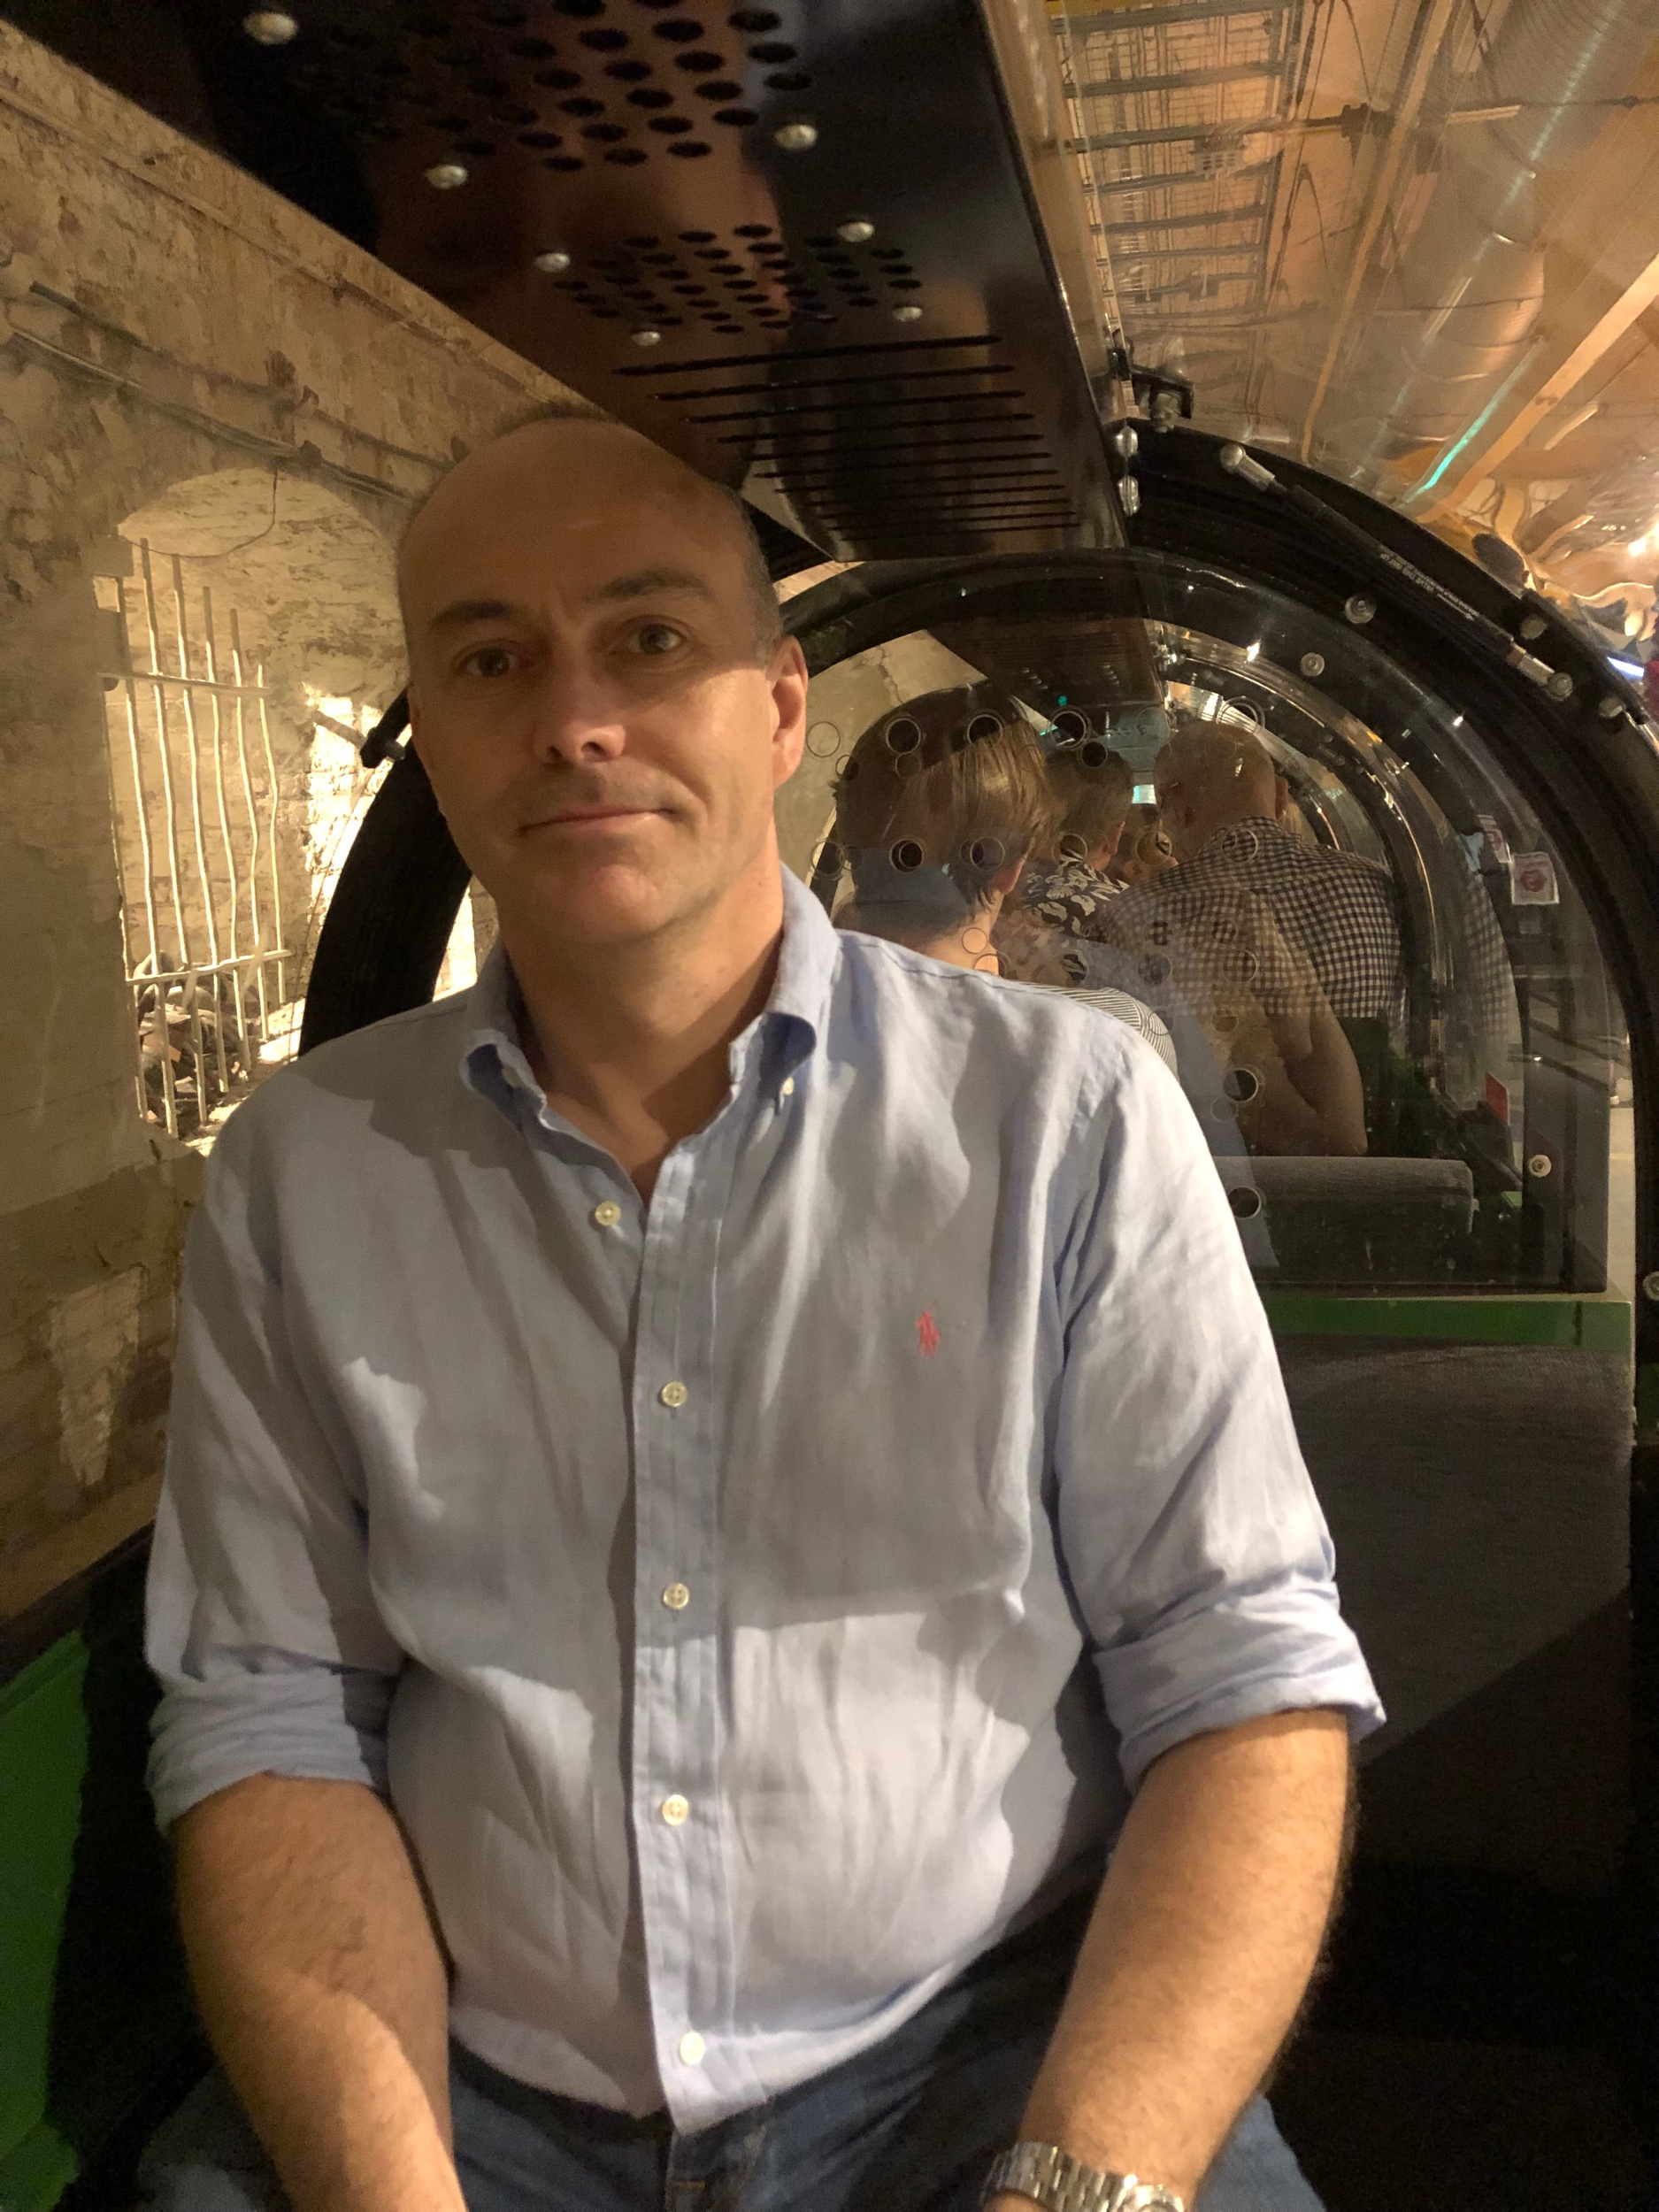 Inside the tiny tube trains that now serve this tunnel.